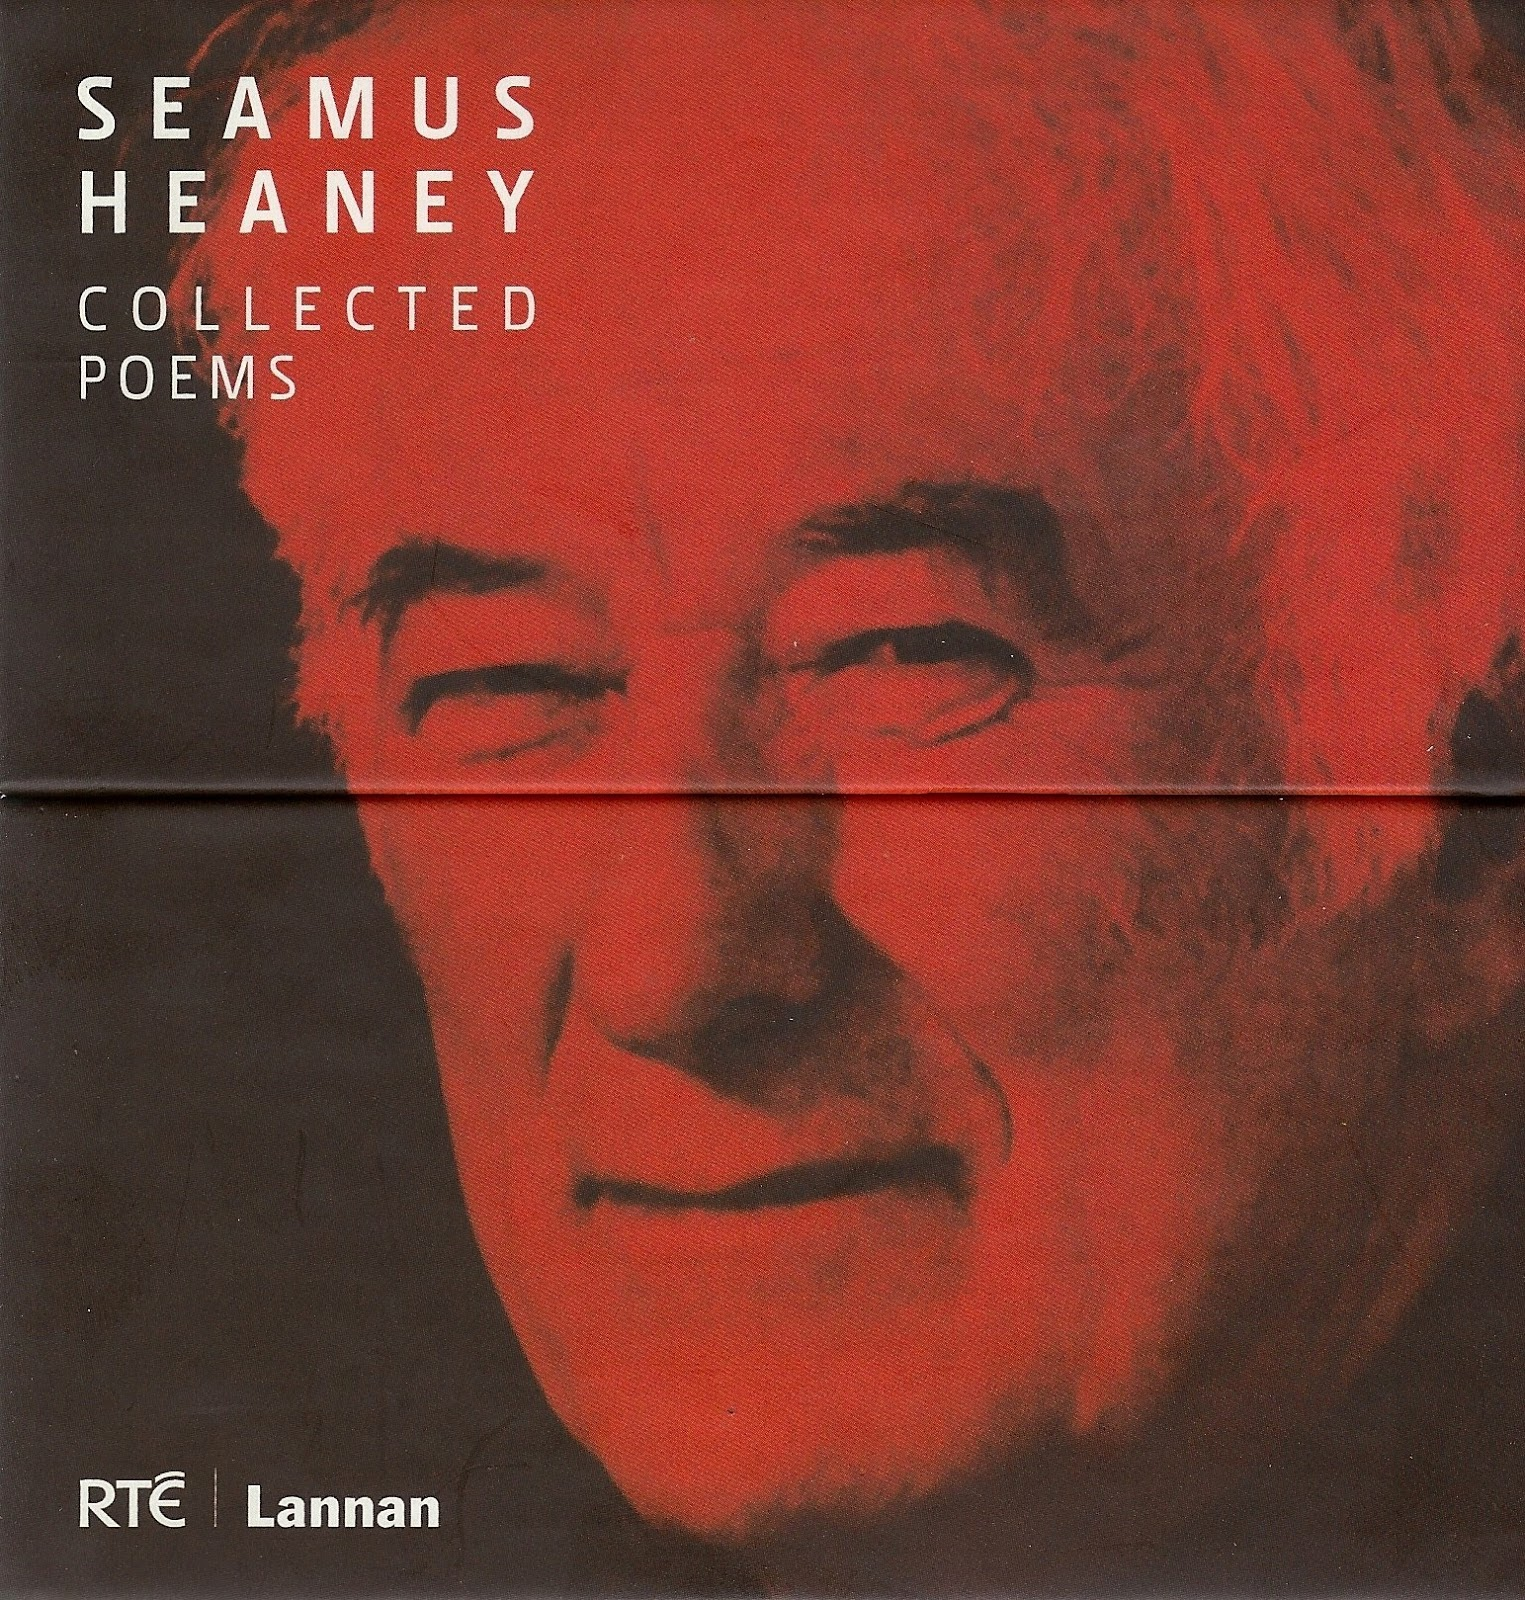 seamus heaney only the essay the redress of poetry 6 essays such as antony easthope's 'how good is seamus heaney  (1988),  the redress of poetry, oxford lectures (1995), finders keepers: selected prose   framework with which to read his poetry as such only furthers his appeal not.